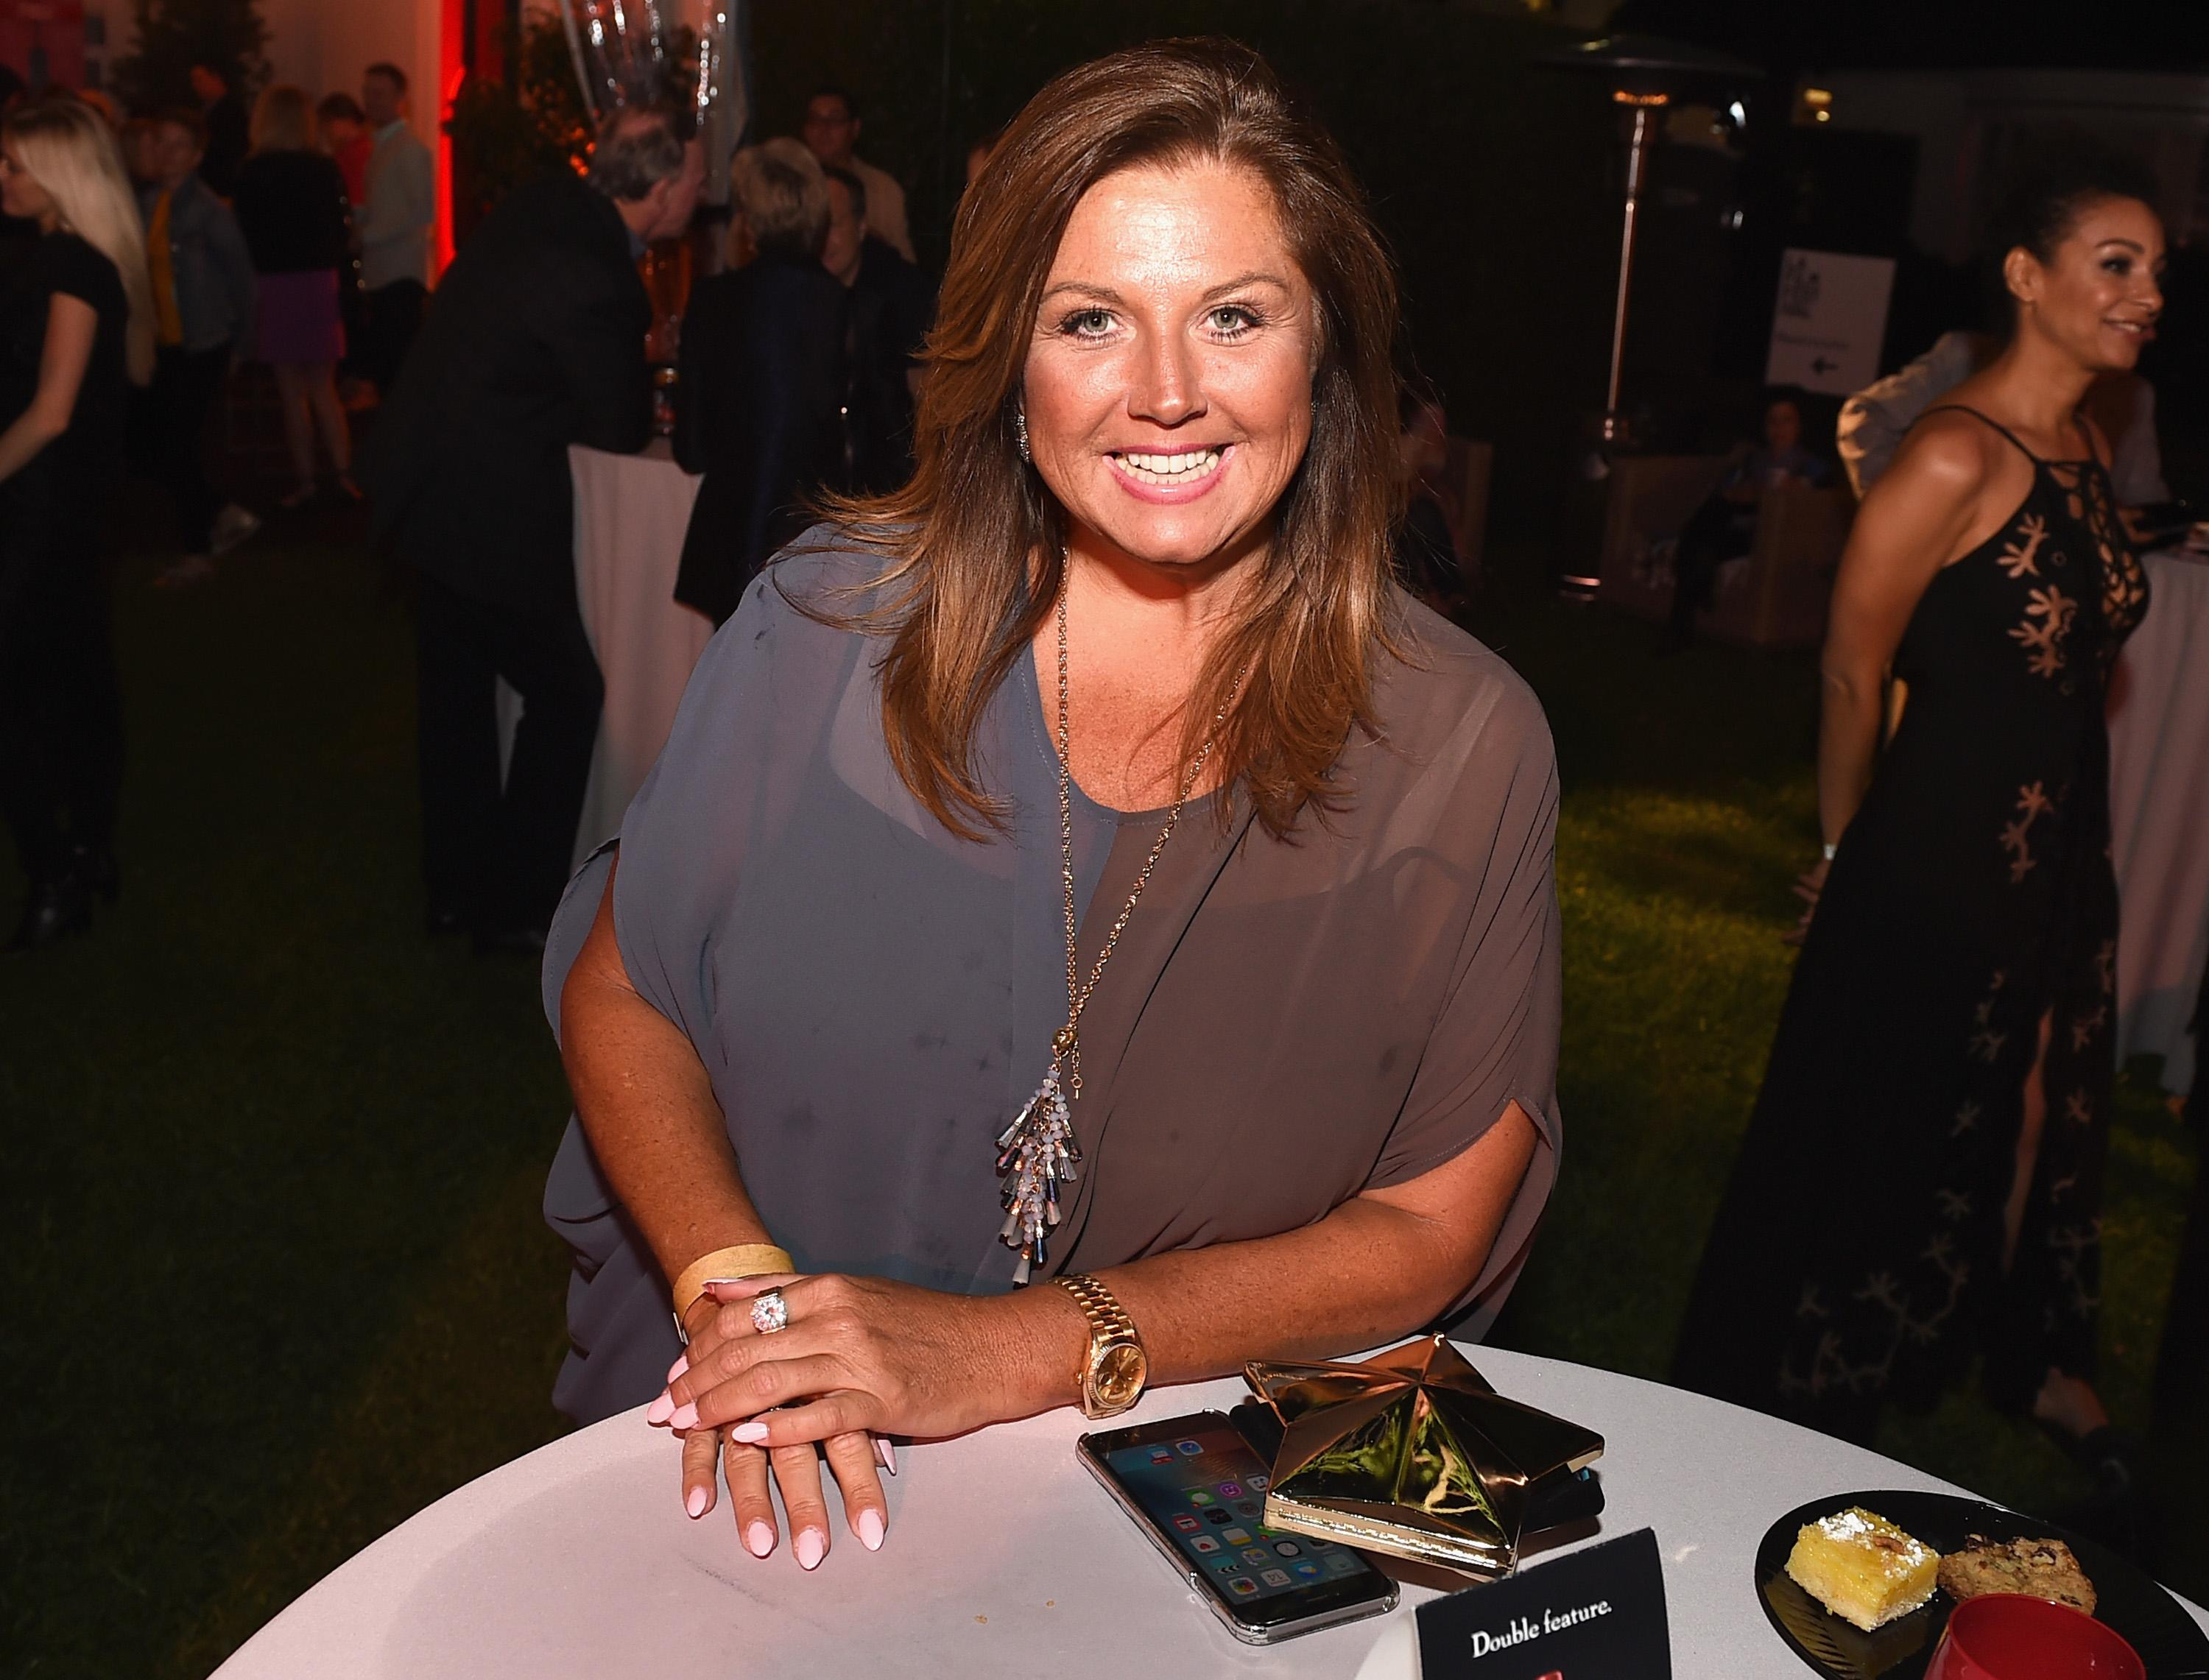 Abby Lee Miller turns herself in, begins to serve one year sentence